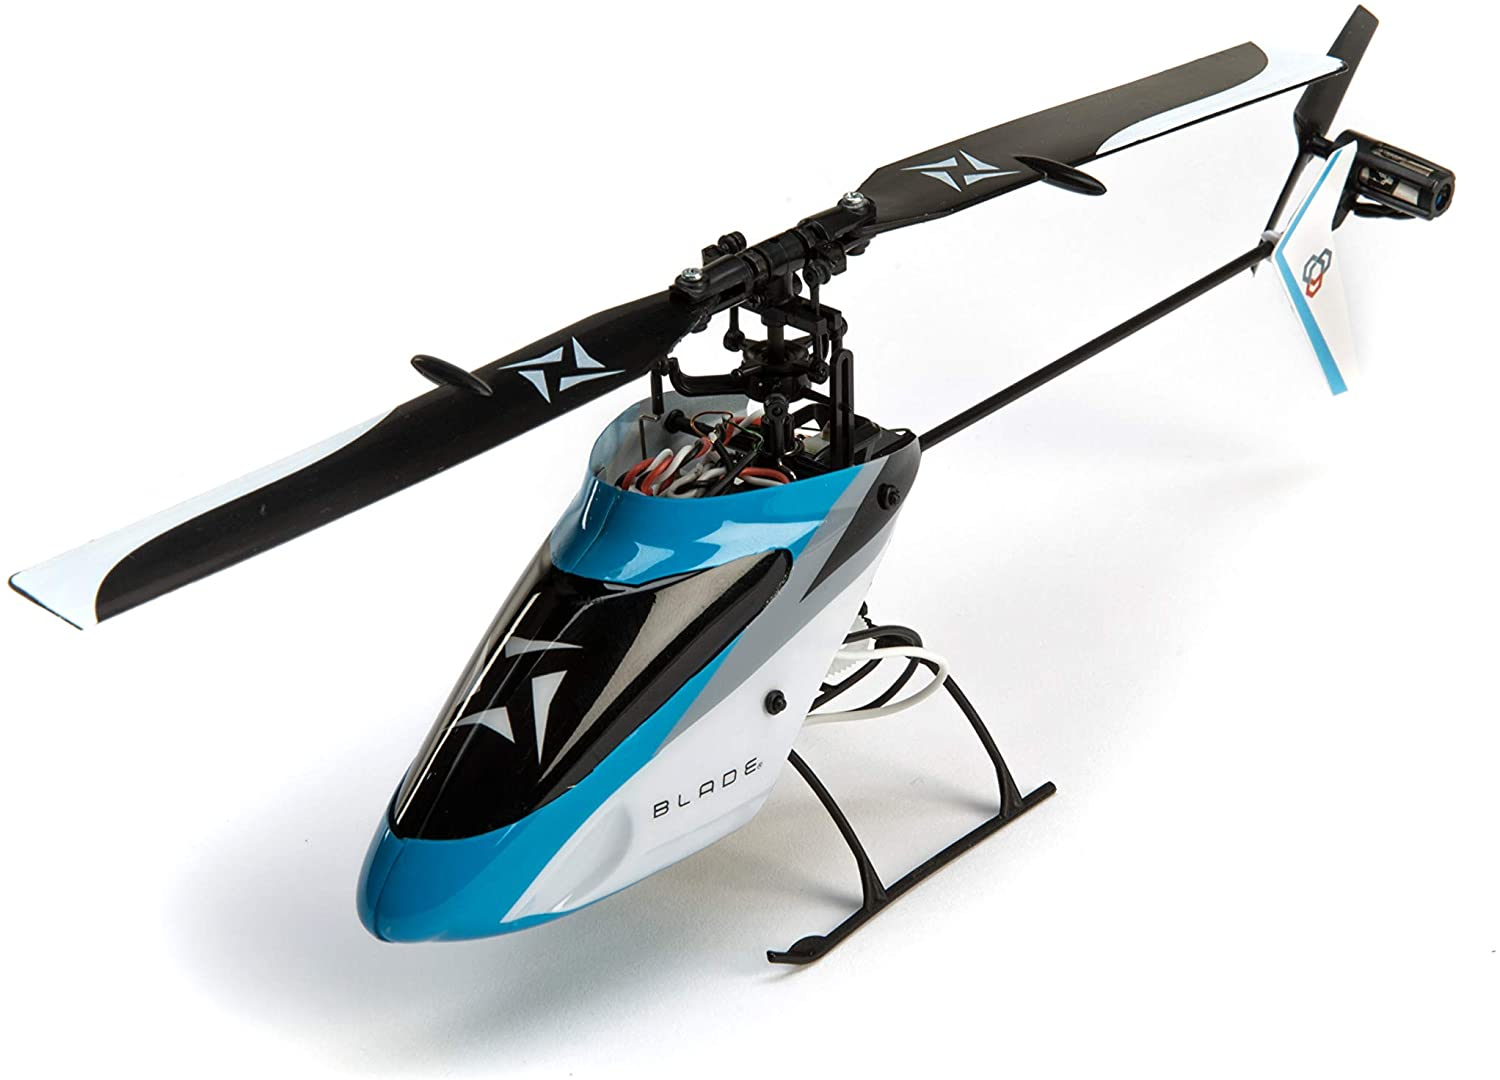 Blade Nano S2 Ultra Micro RC Helicopter